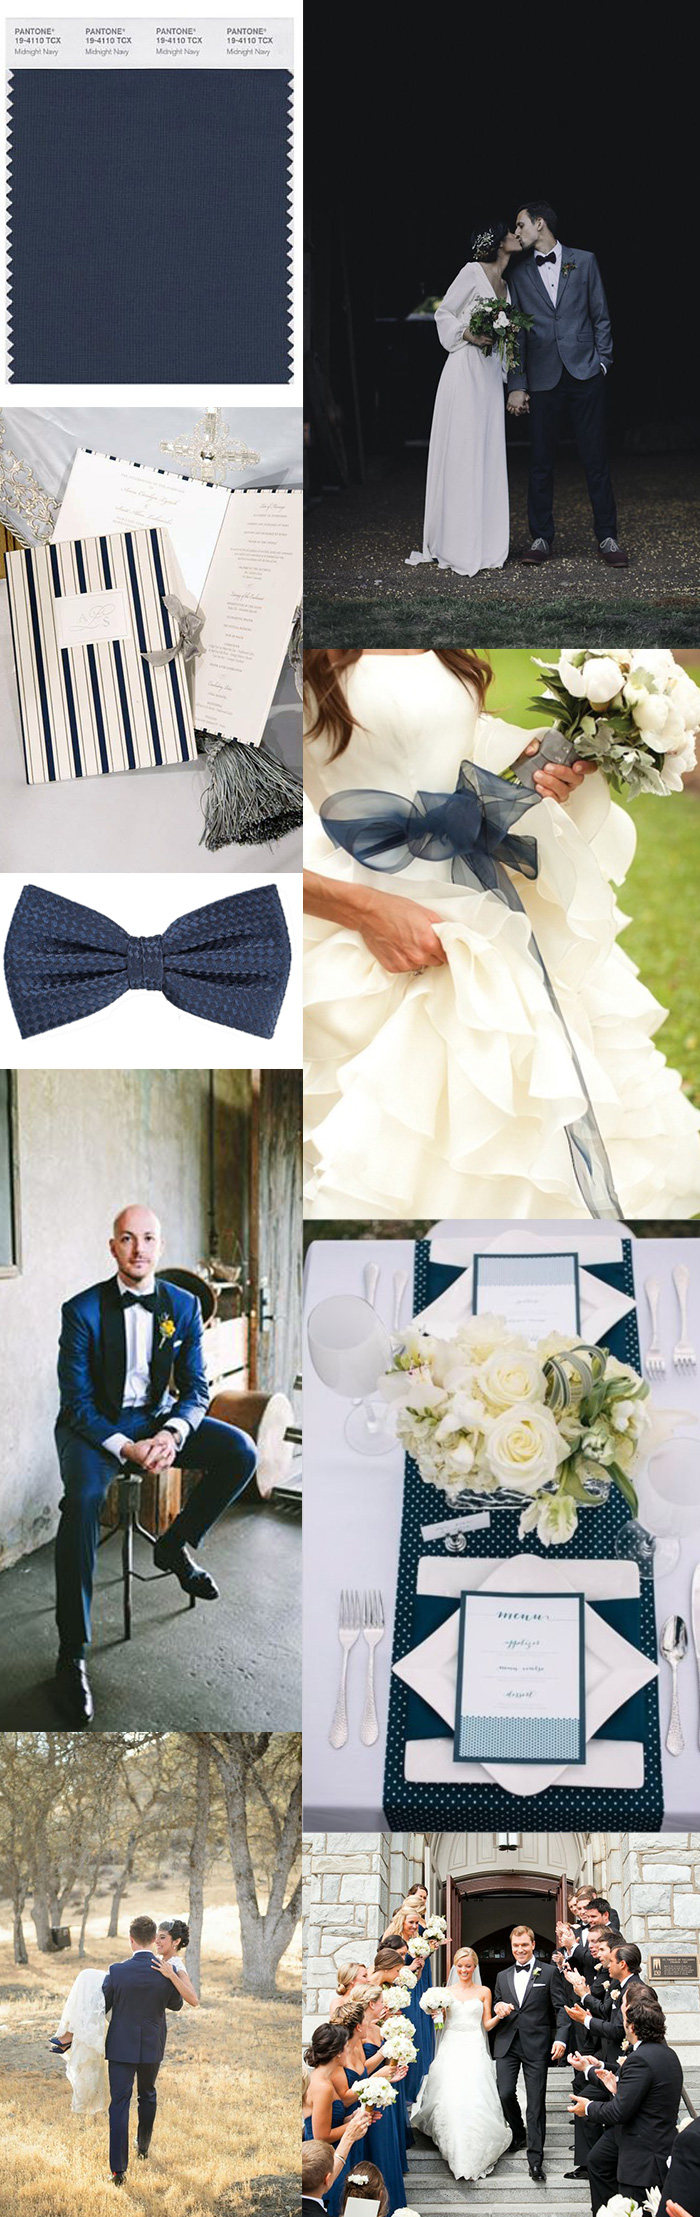 Wedding Color Inspiration – Navy Blue | Bows-N-Ties.com